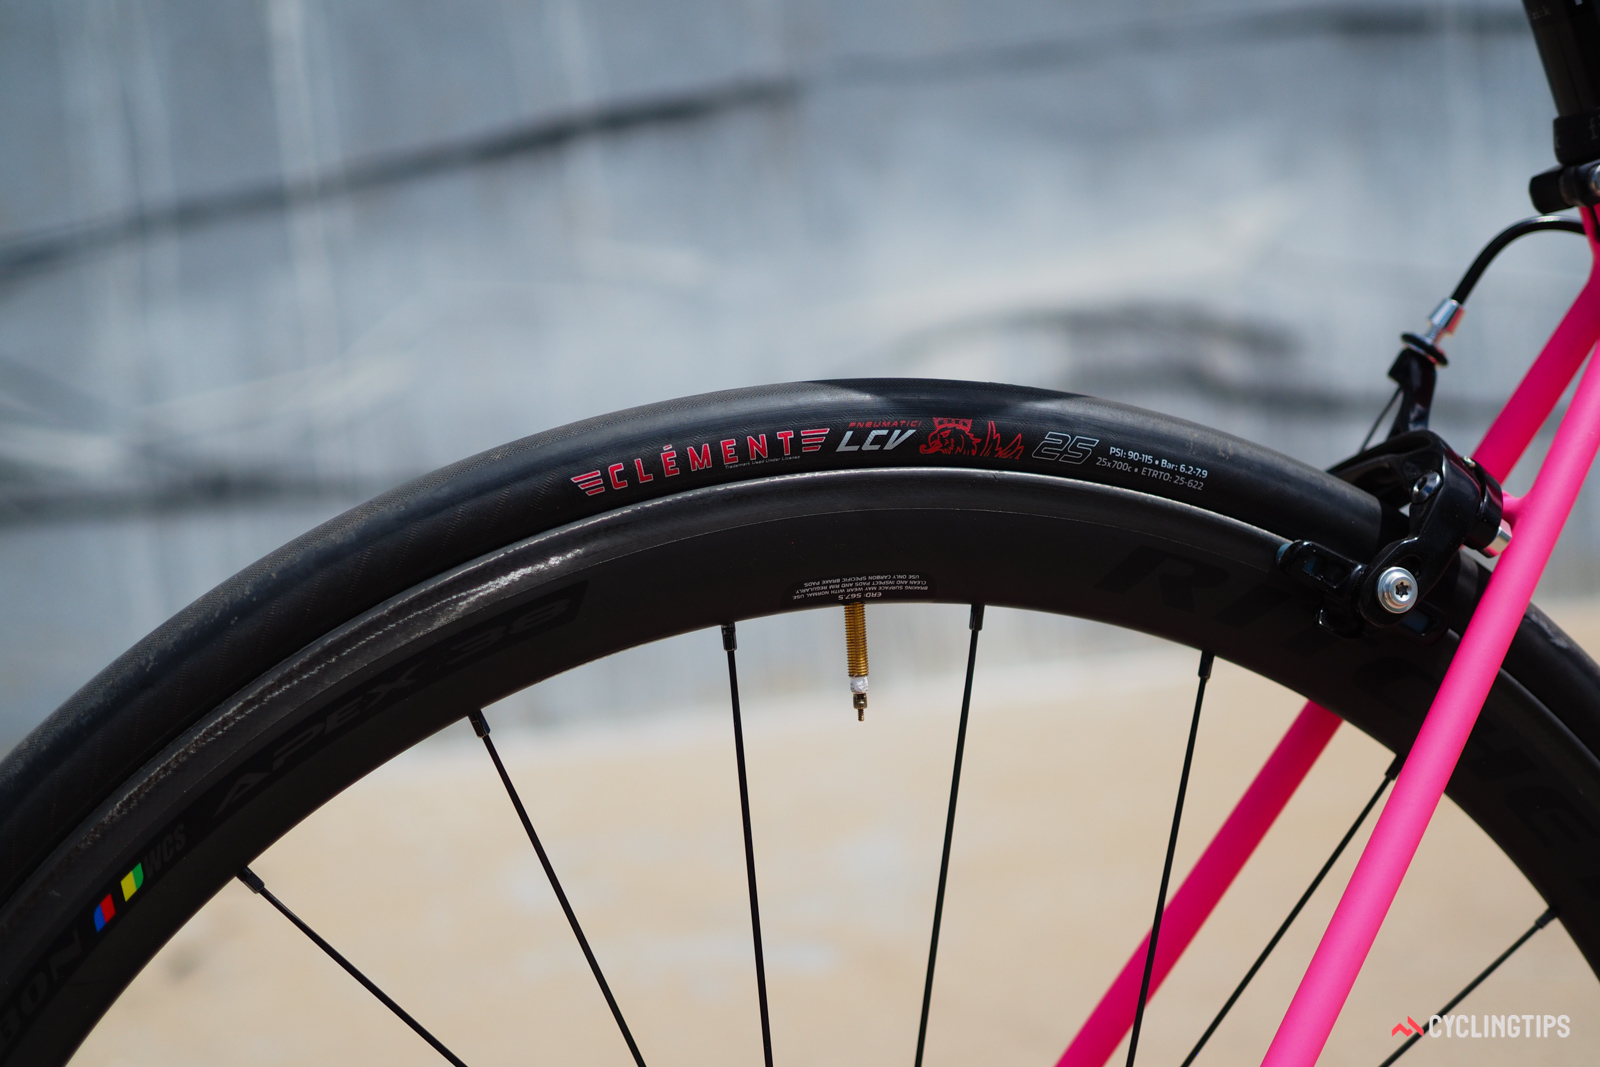 The Clement LCV tires feature supple, fast-rolling casings. They're mounted to Ritchey WCS Apex 38 carbon clinchers.